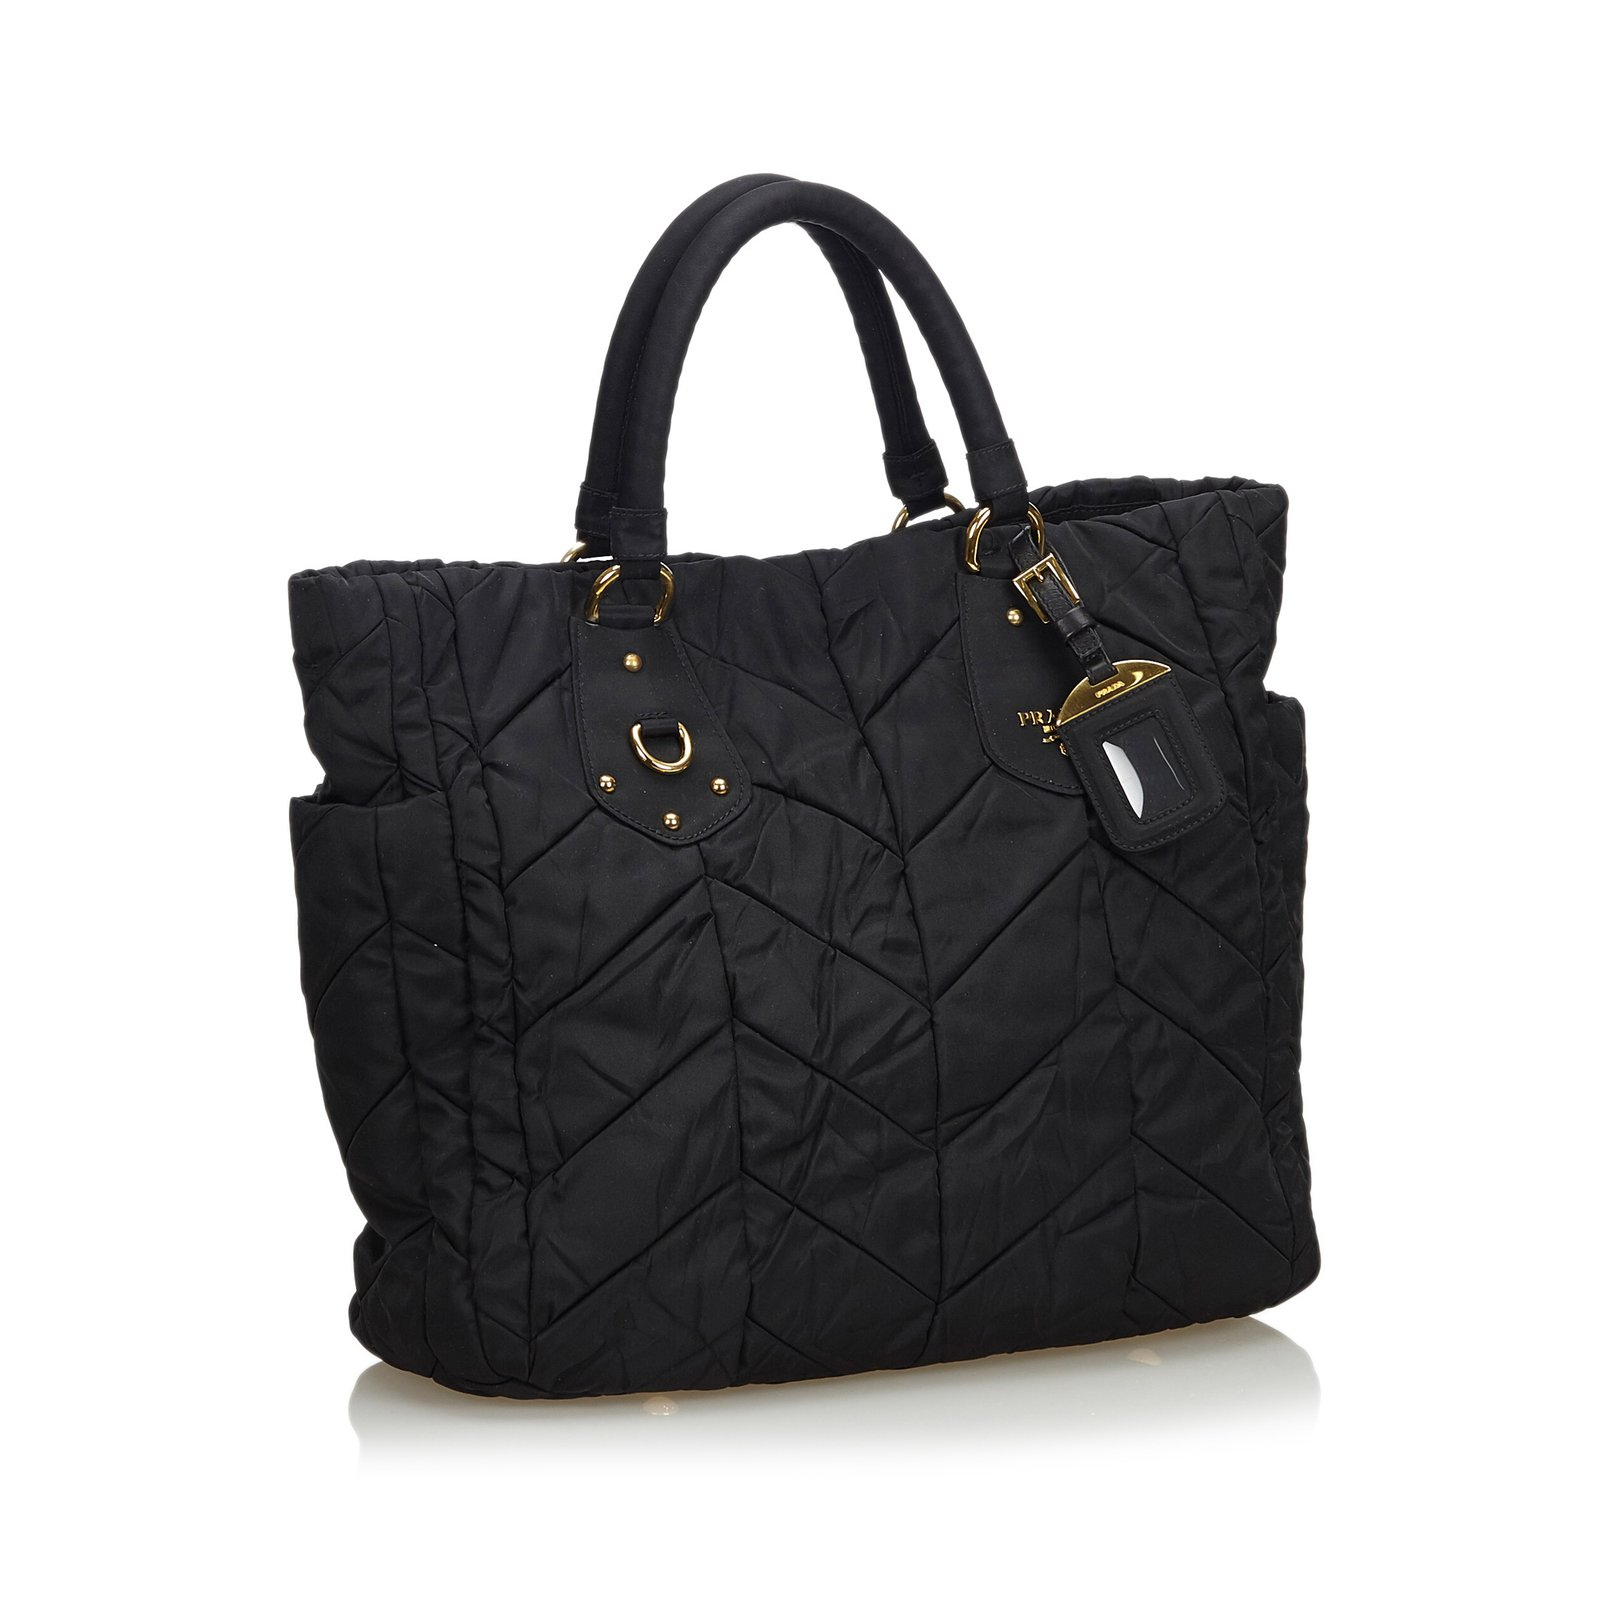 df5bcda3bcbc Prada Nylon Tote Bag Handbags Leather,Other,Nylon,Cloth Black ref ...